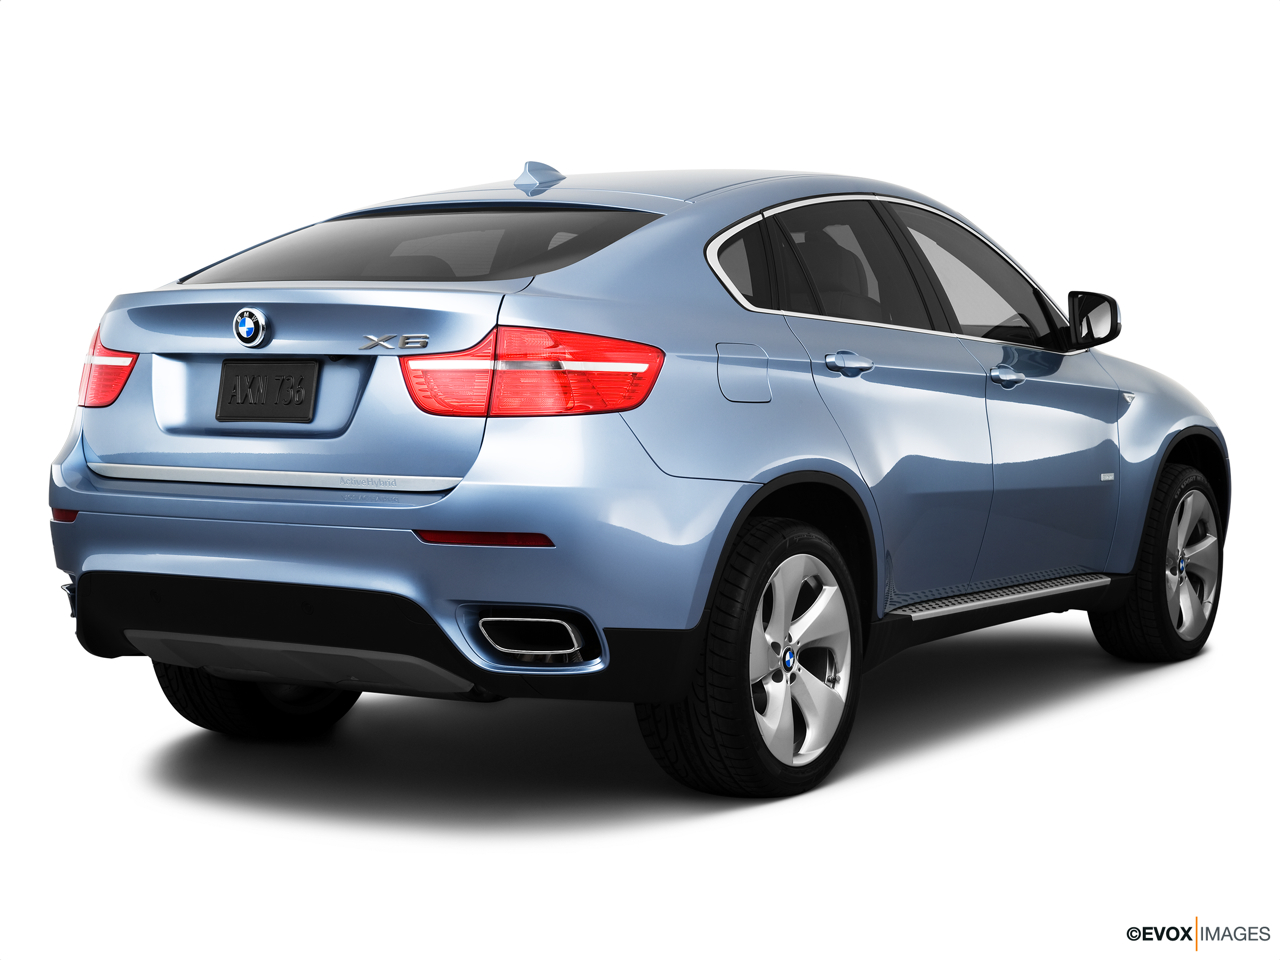 2010 BMW X6 Hybrid Base 048 - no description